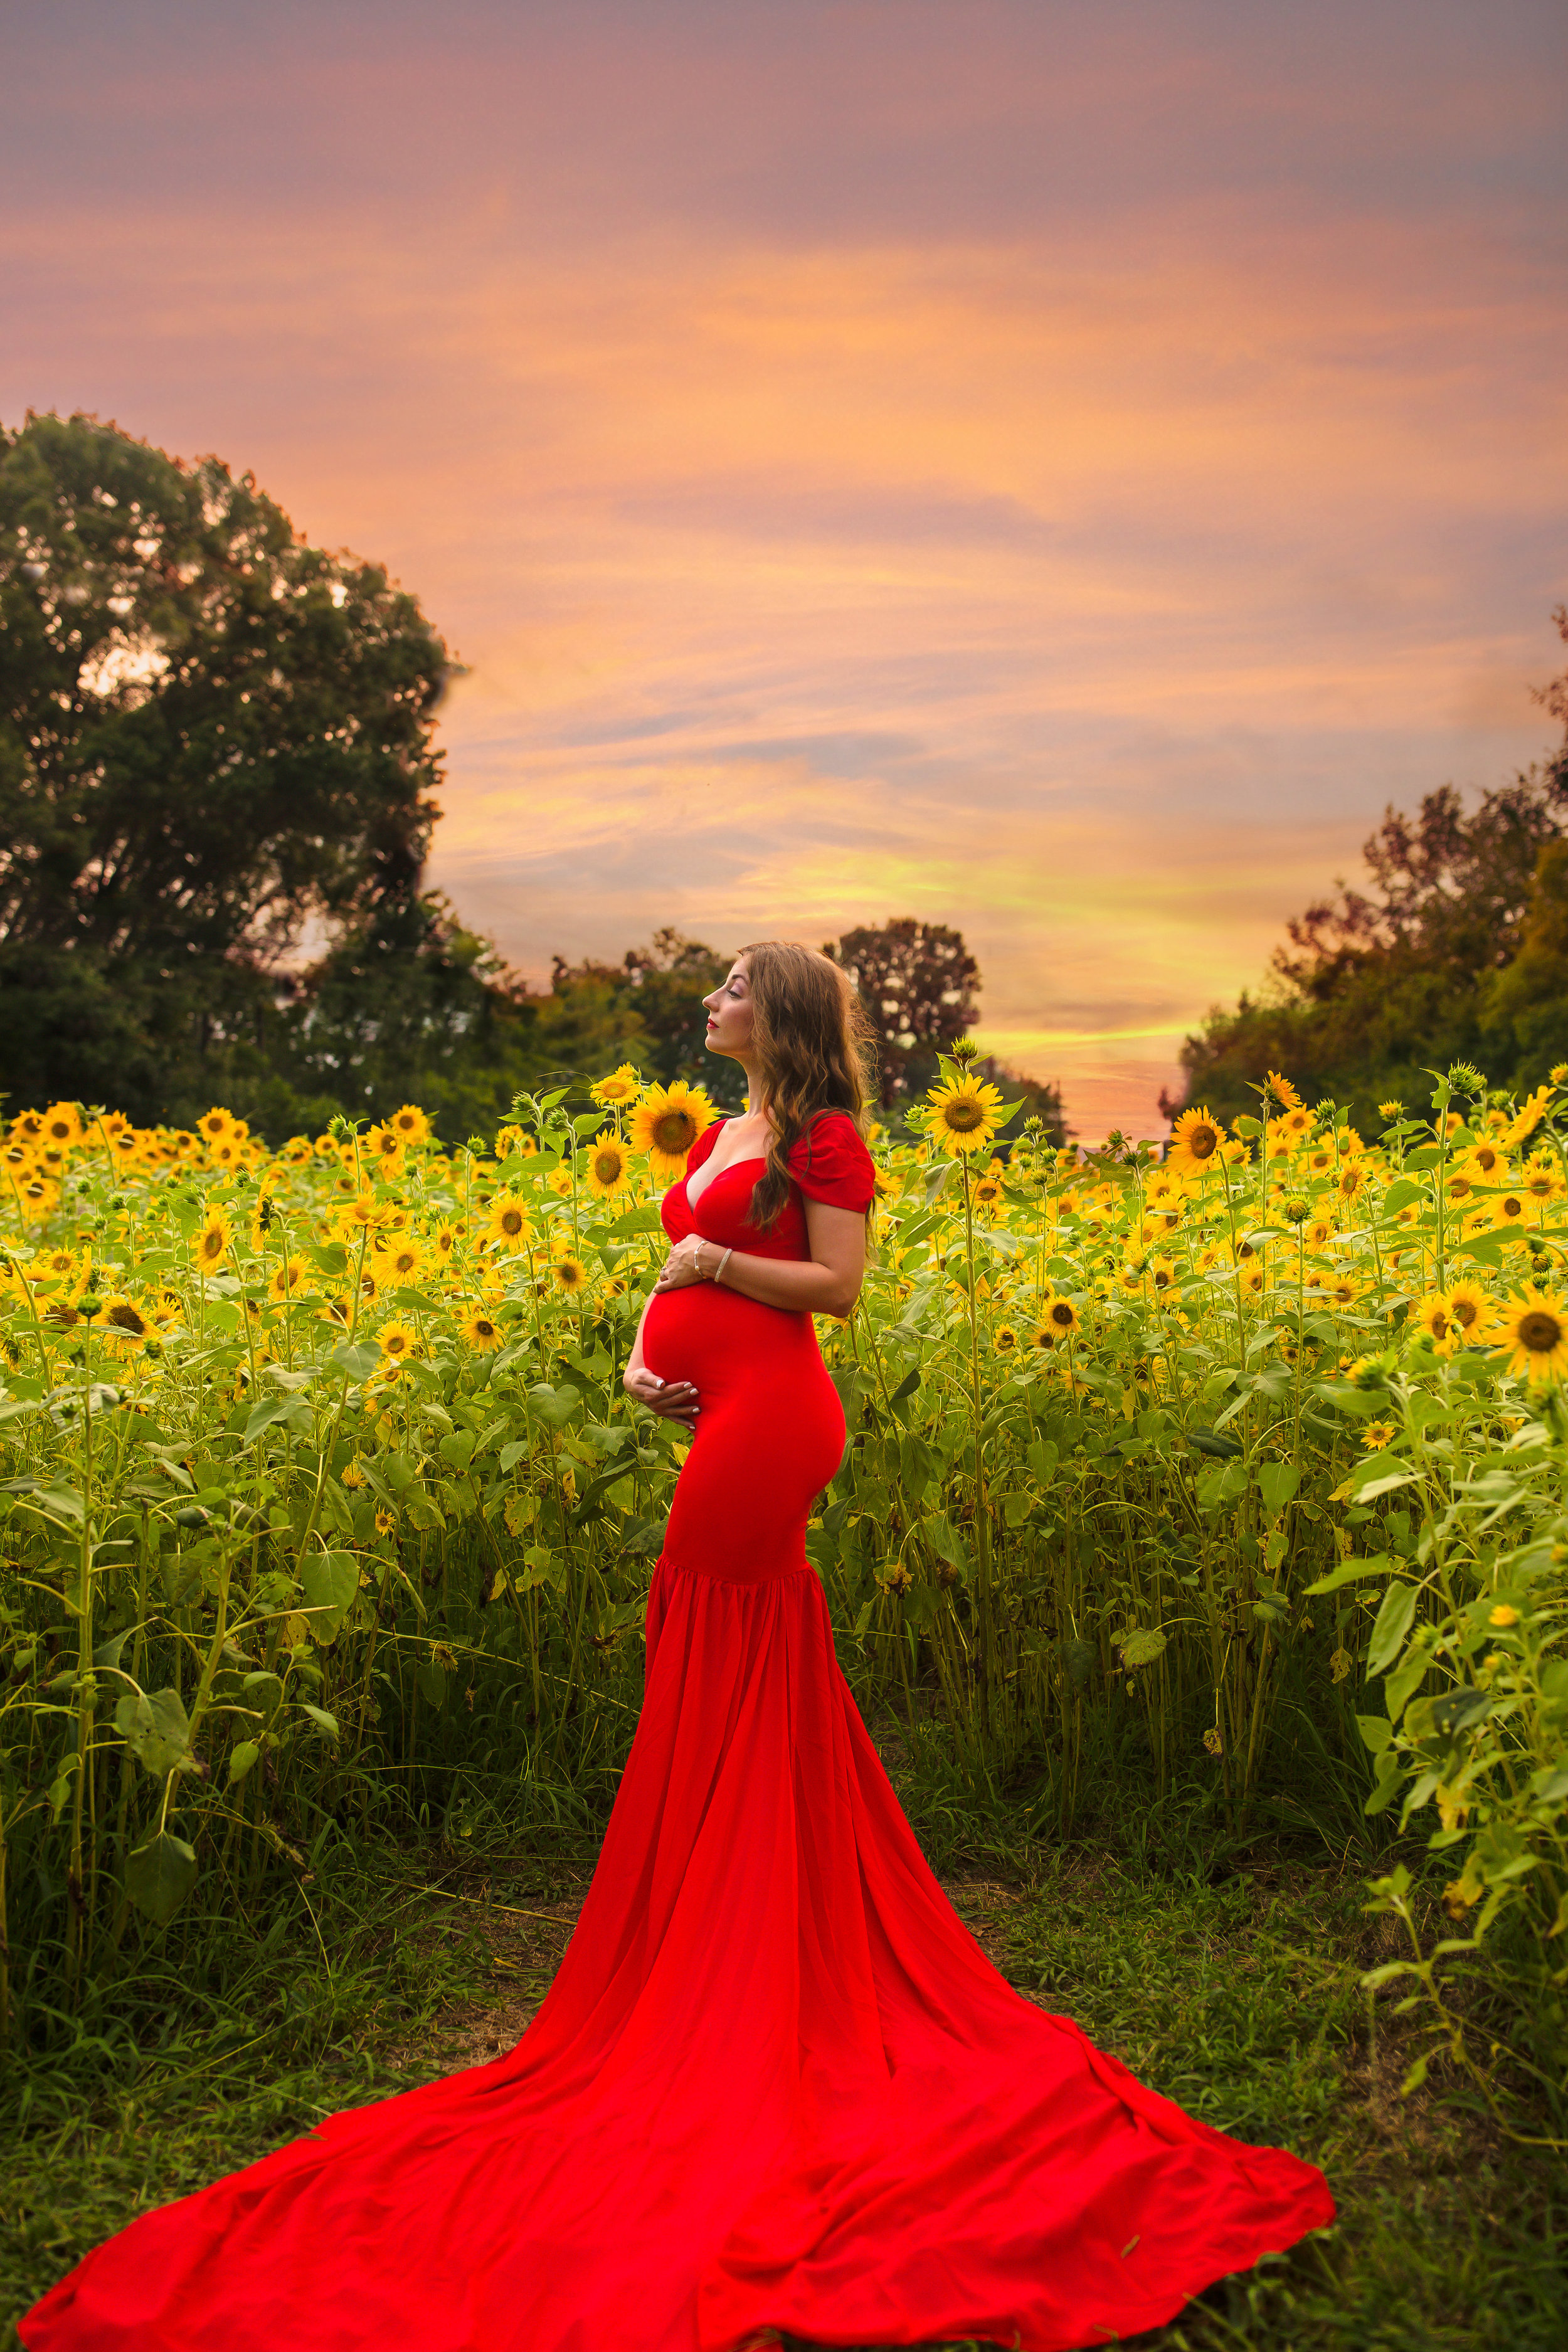 Alexis-&-Quent-Sunflower-Maternity-Nashville-Maternity-Photographer-Chelsea-Meadows-Photography-(1)2.jpg